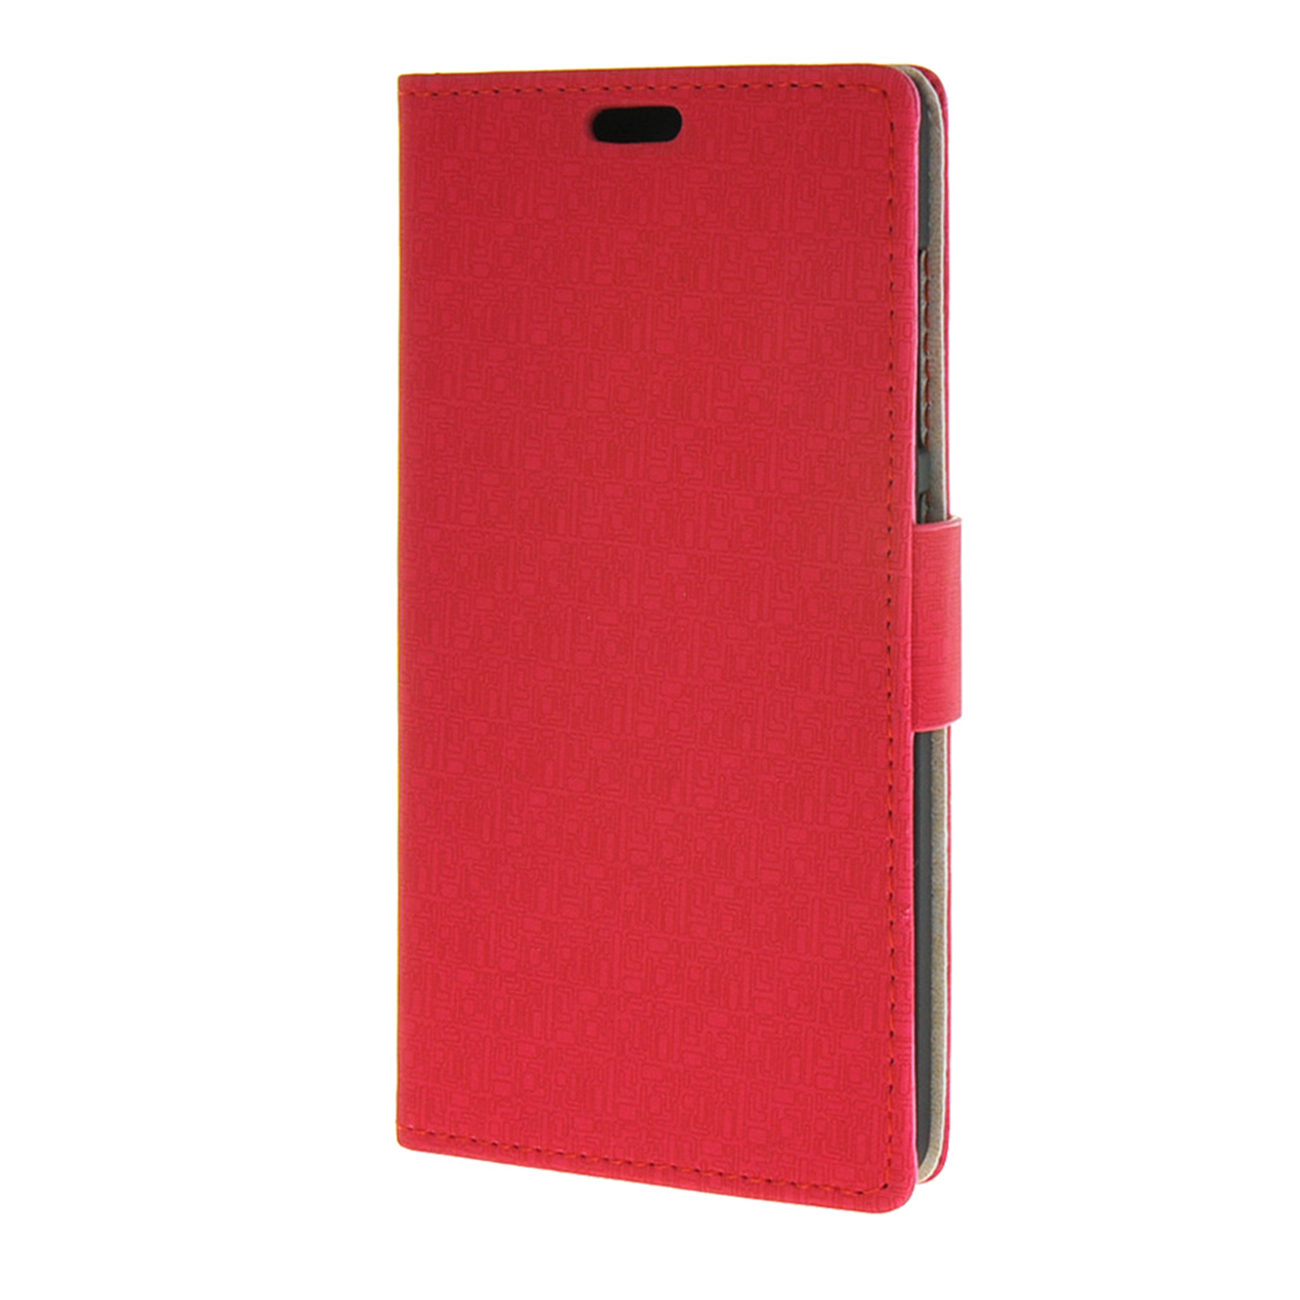 MOONCASE mesh style protective back case for htc one x s720e deep pink